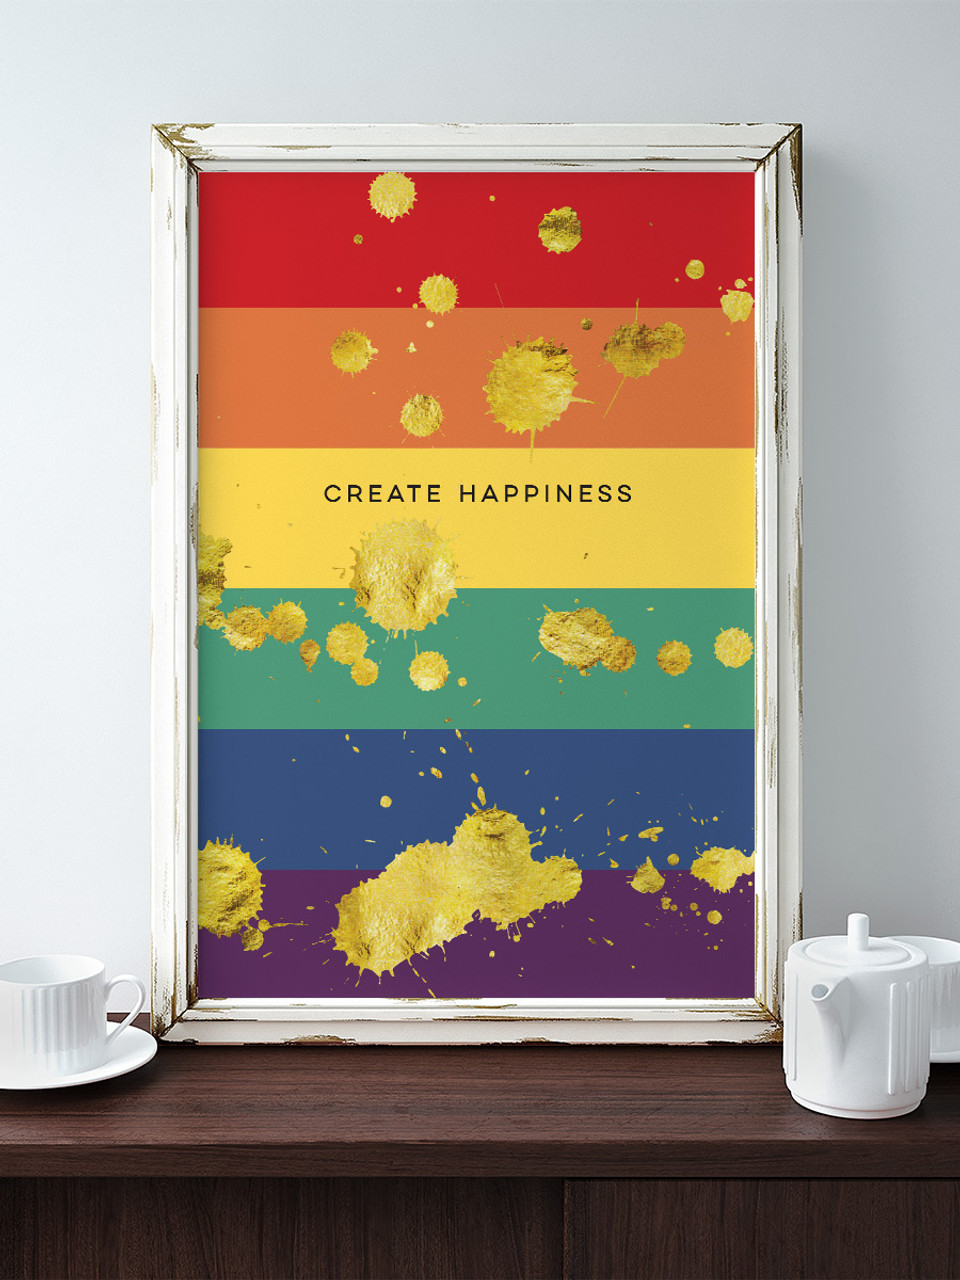 Create Happiness Rainbow Spatter Art Print by Earmark Social Goods Inc.